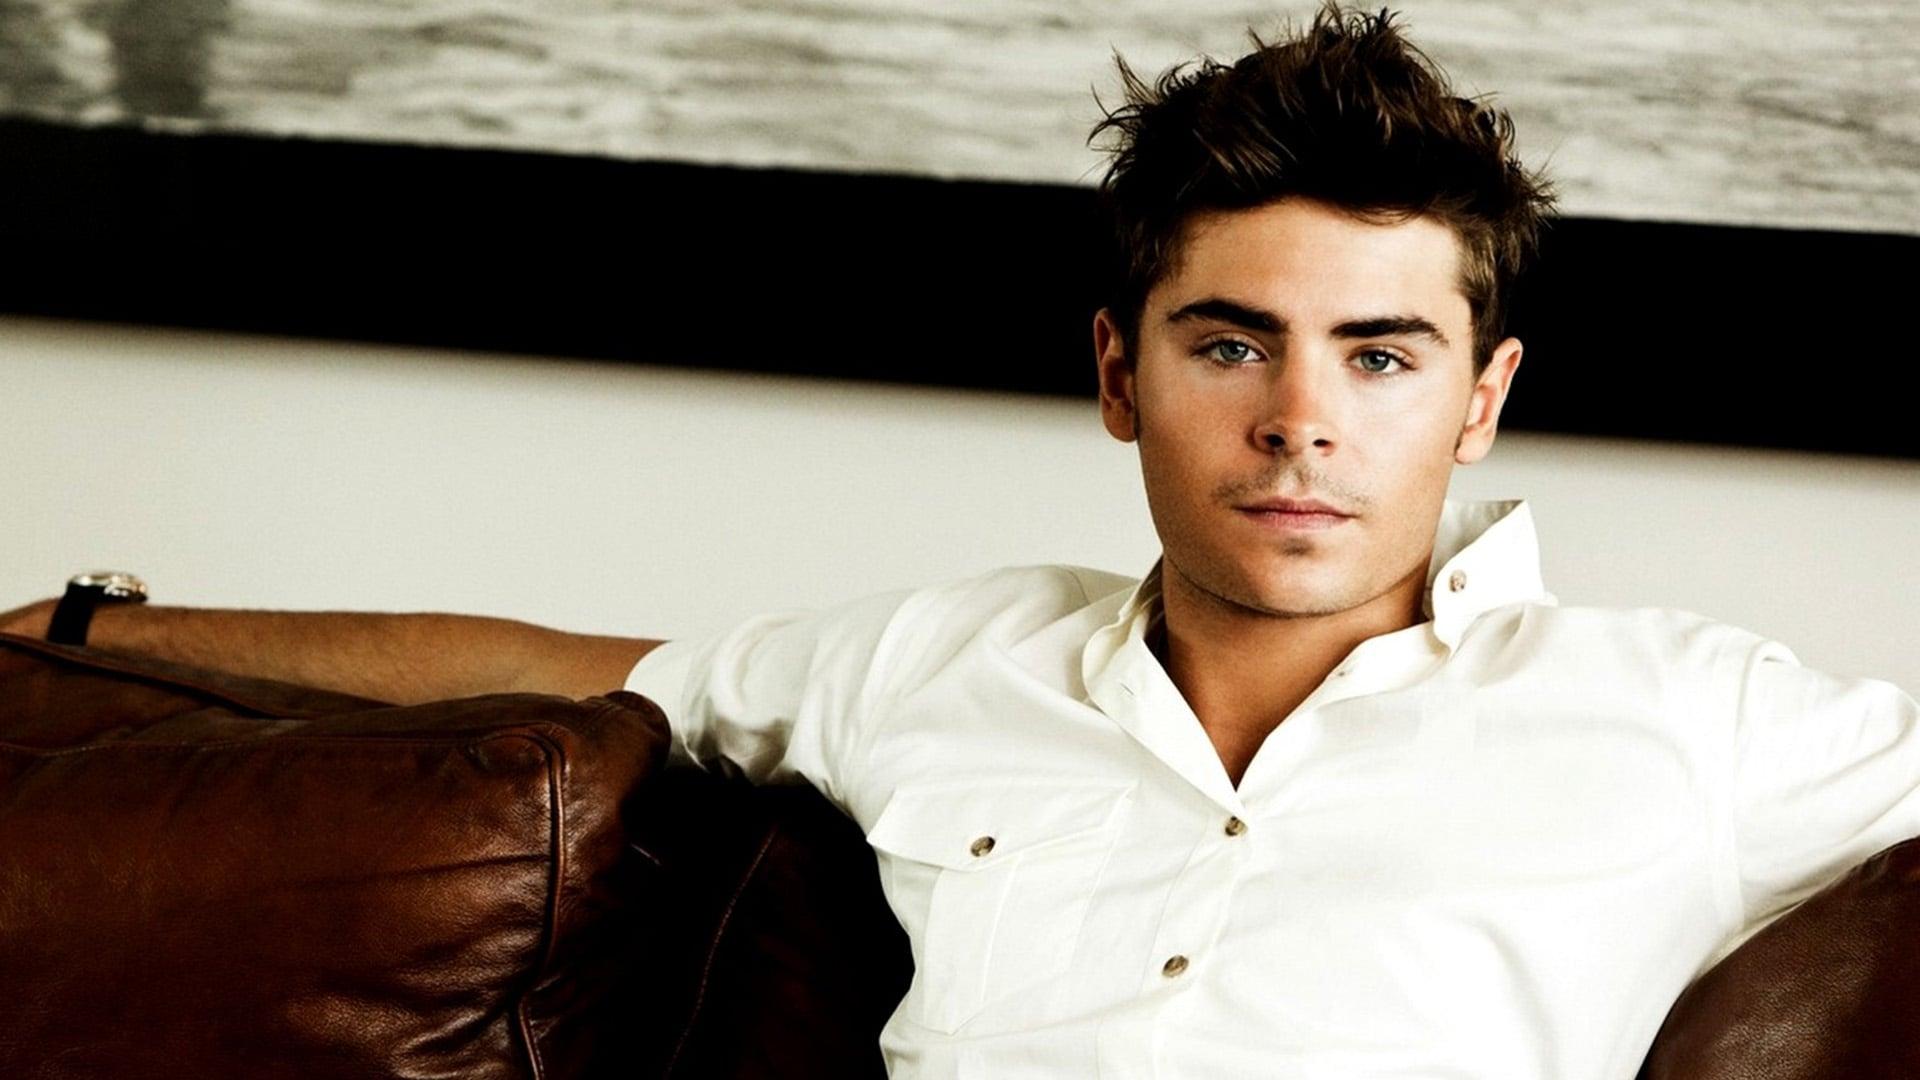 Zac Efron free download